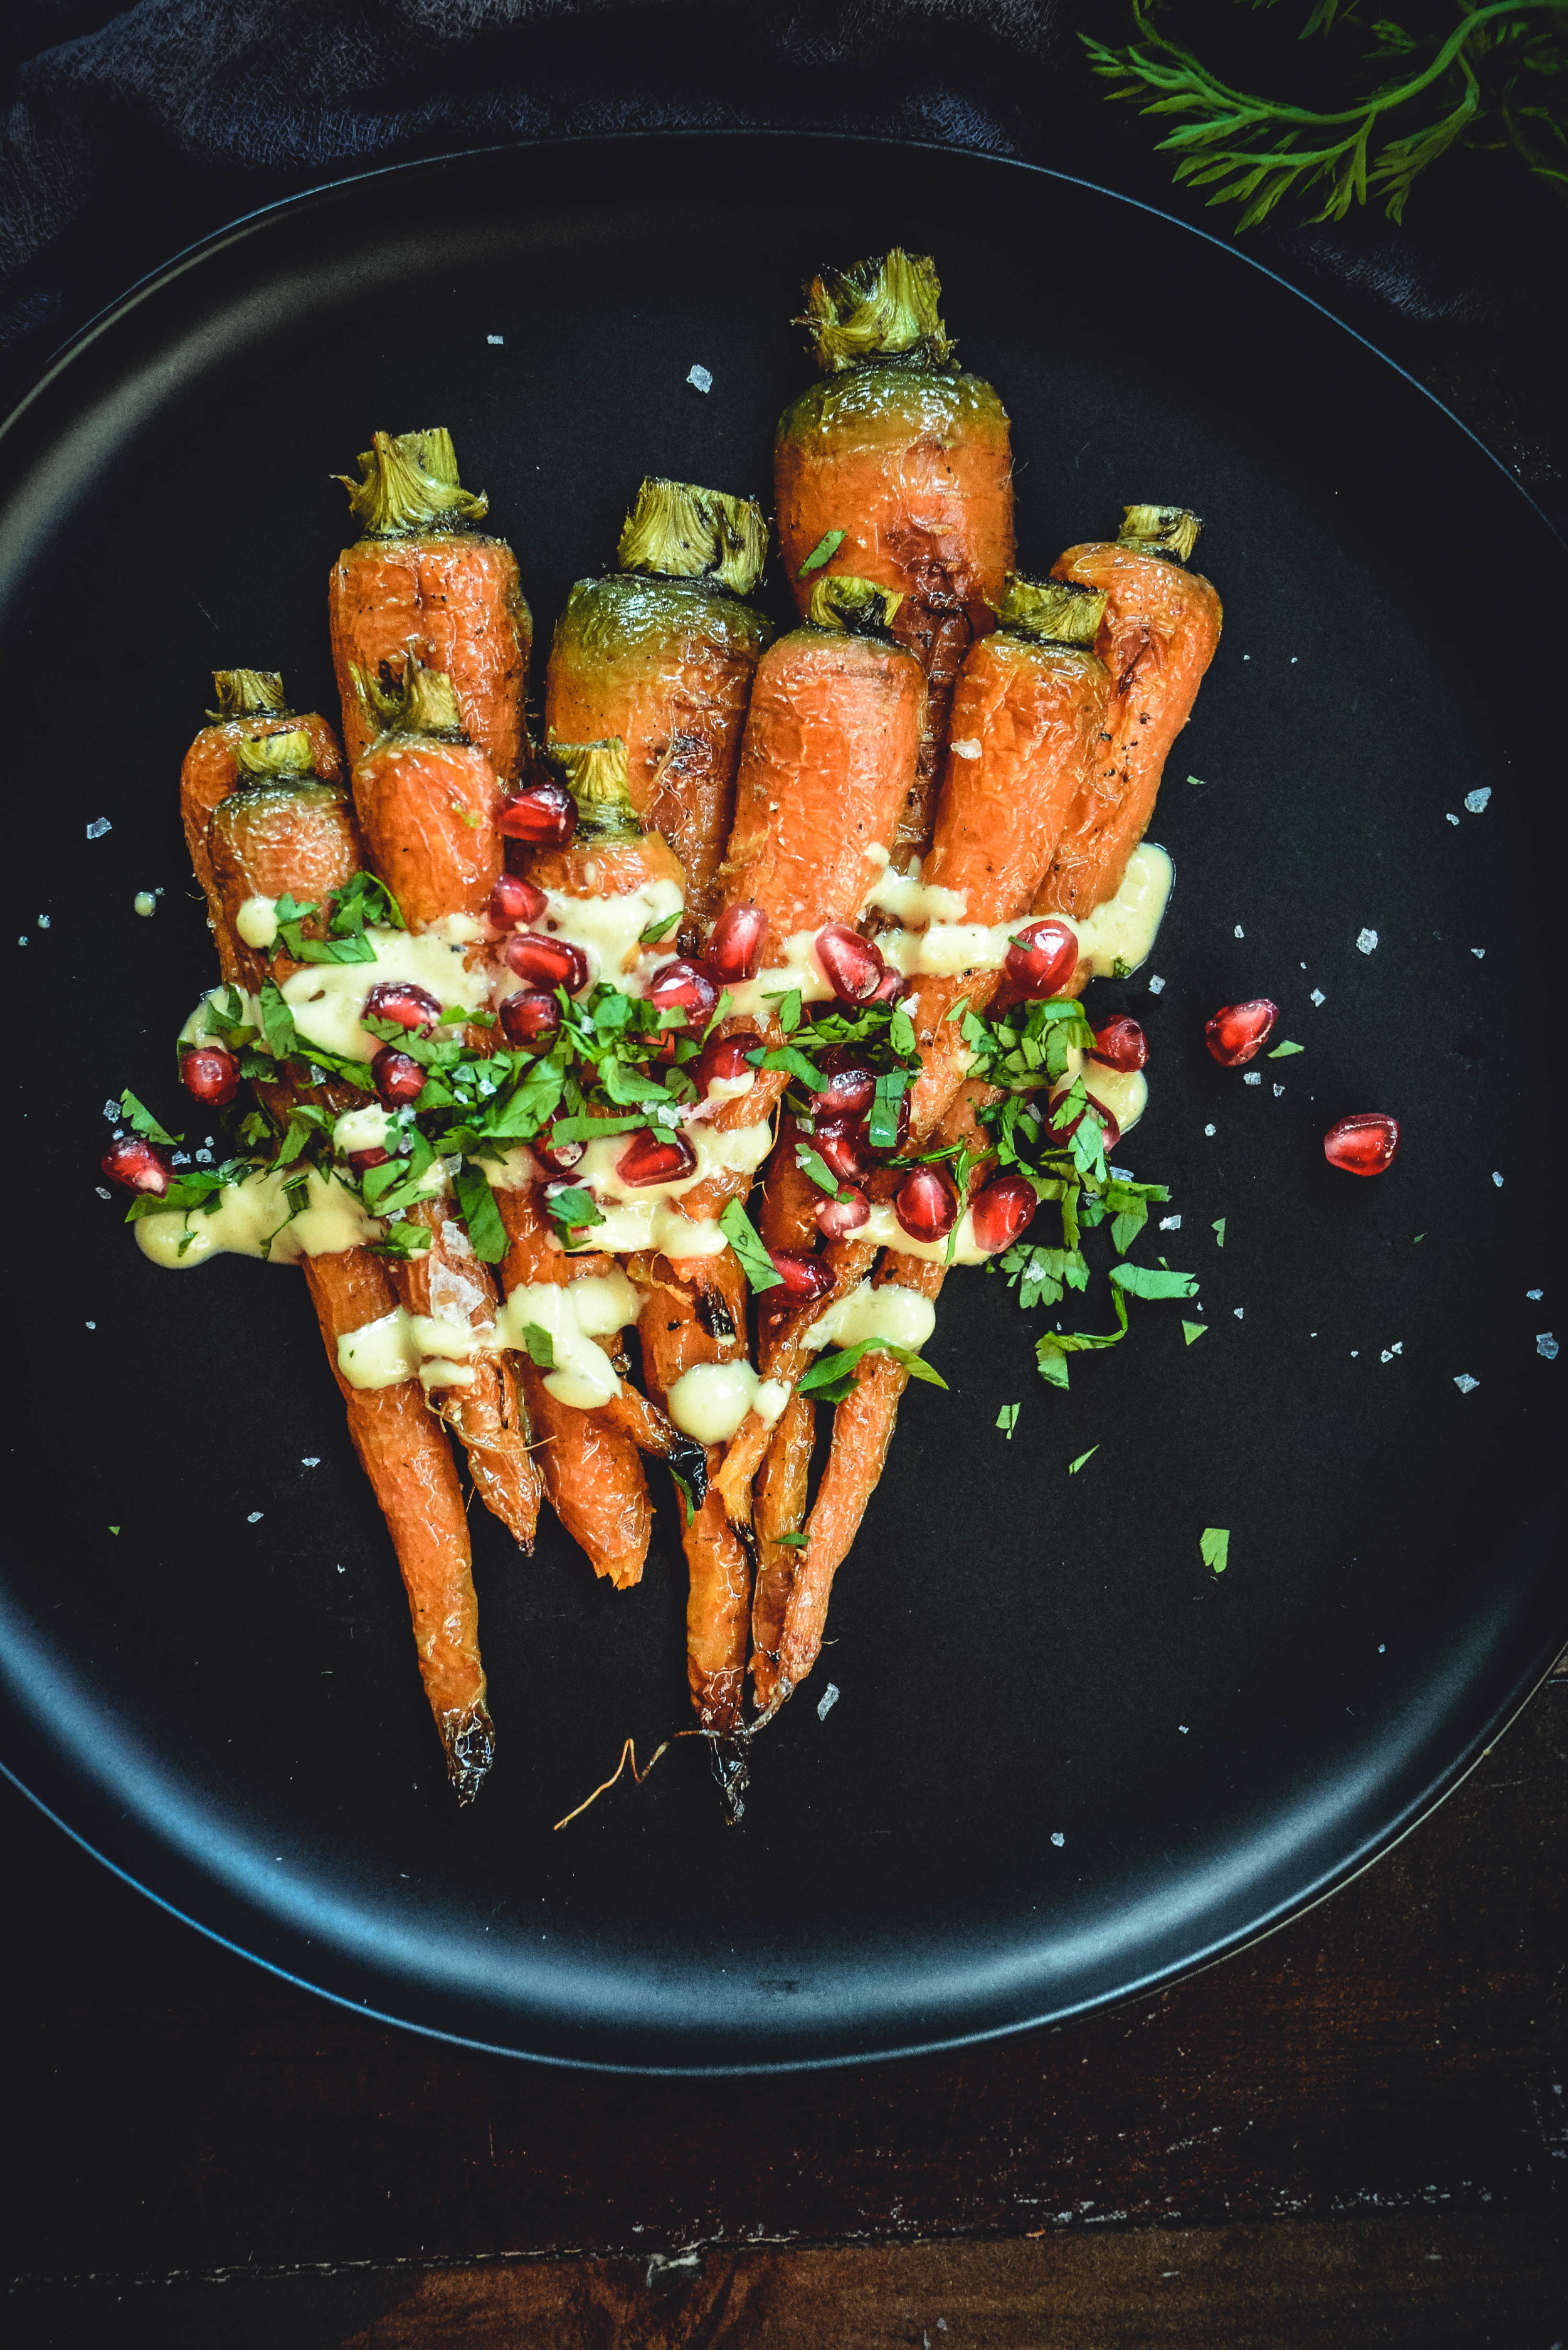 roasted carrots, orange tahini sauce and pomegranate